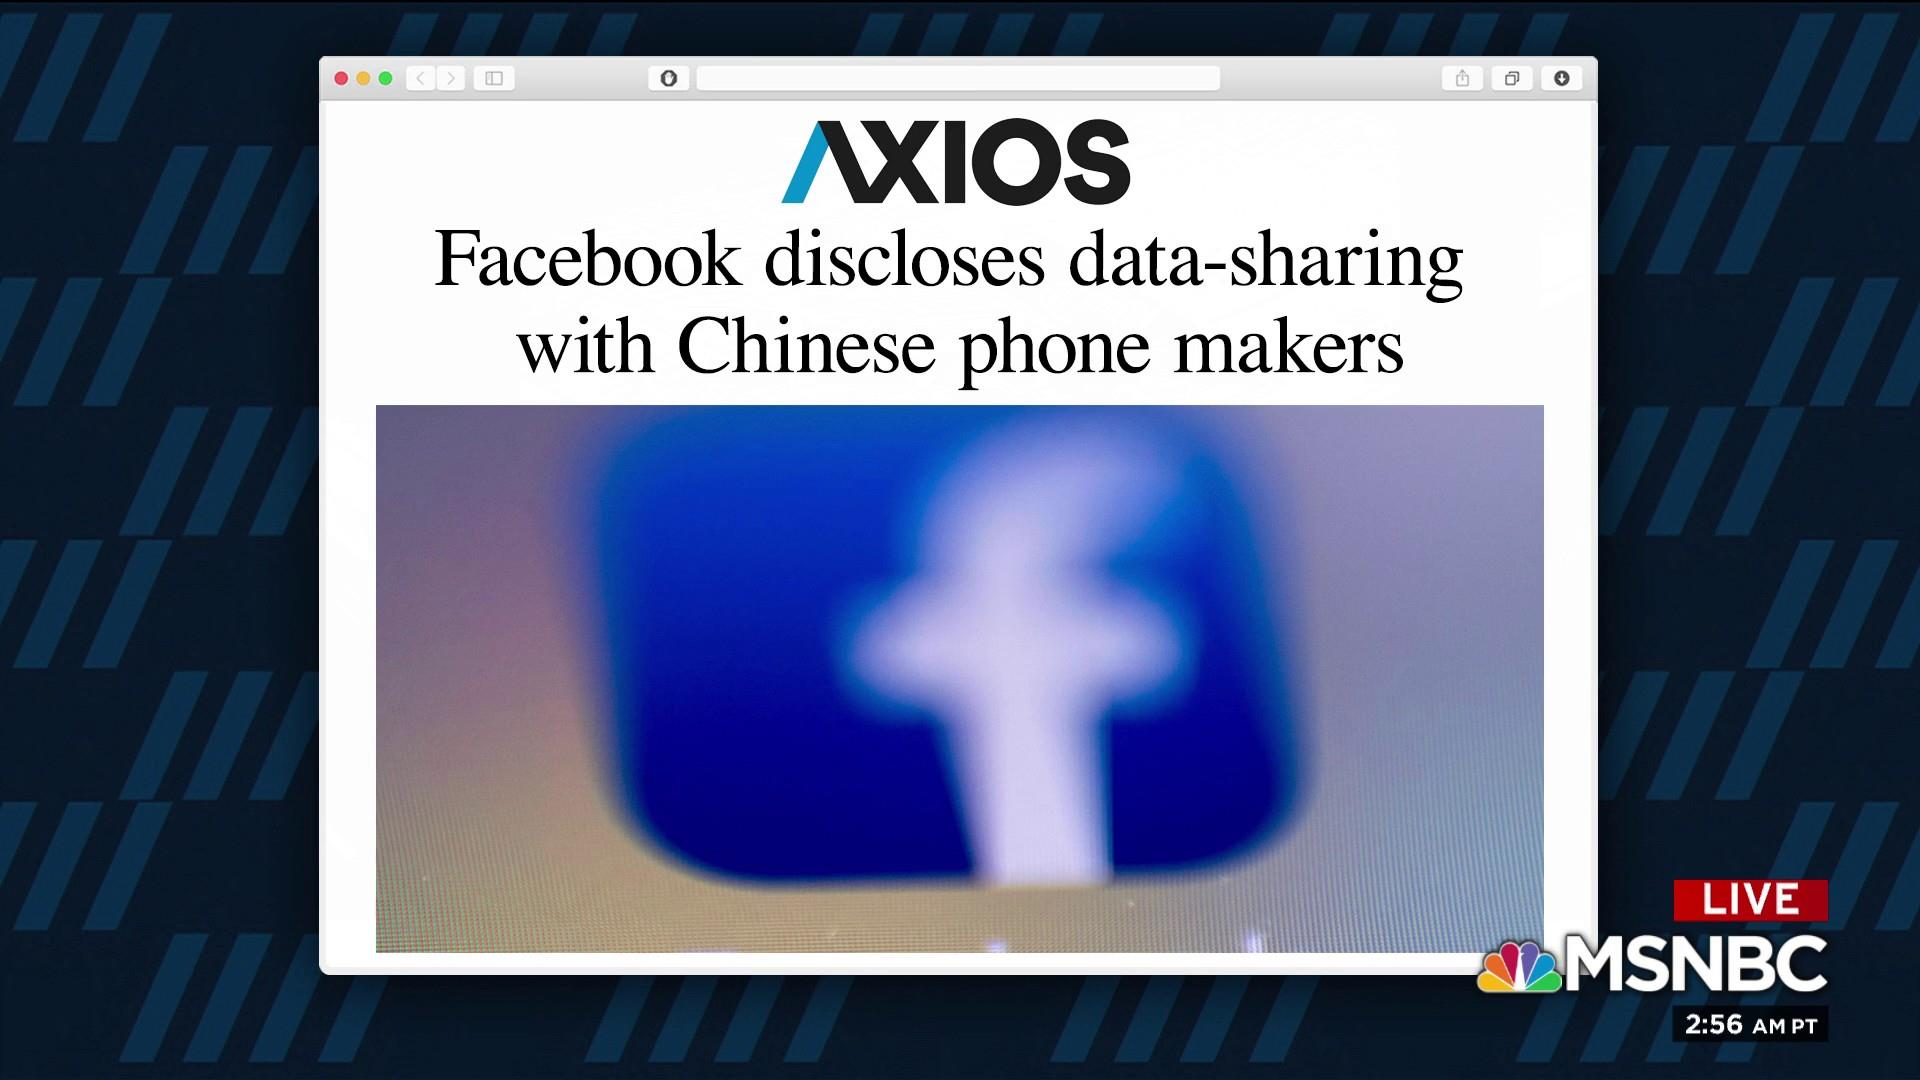 Facebook discloses data-sharing with Chinese phone makers